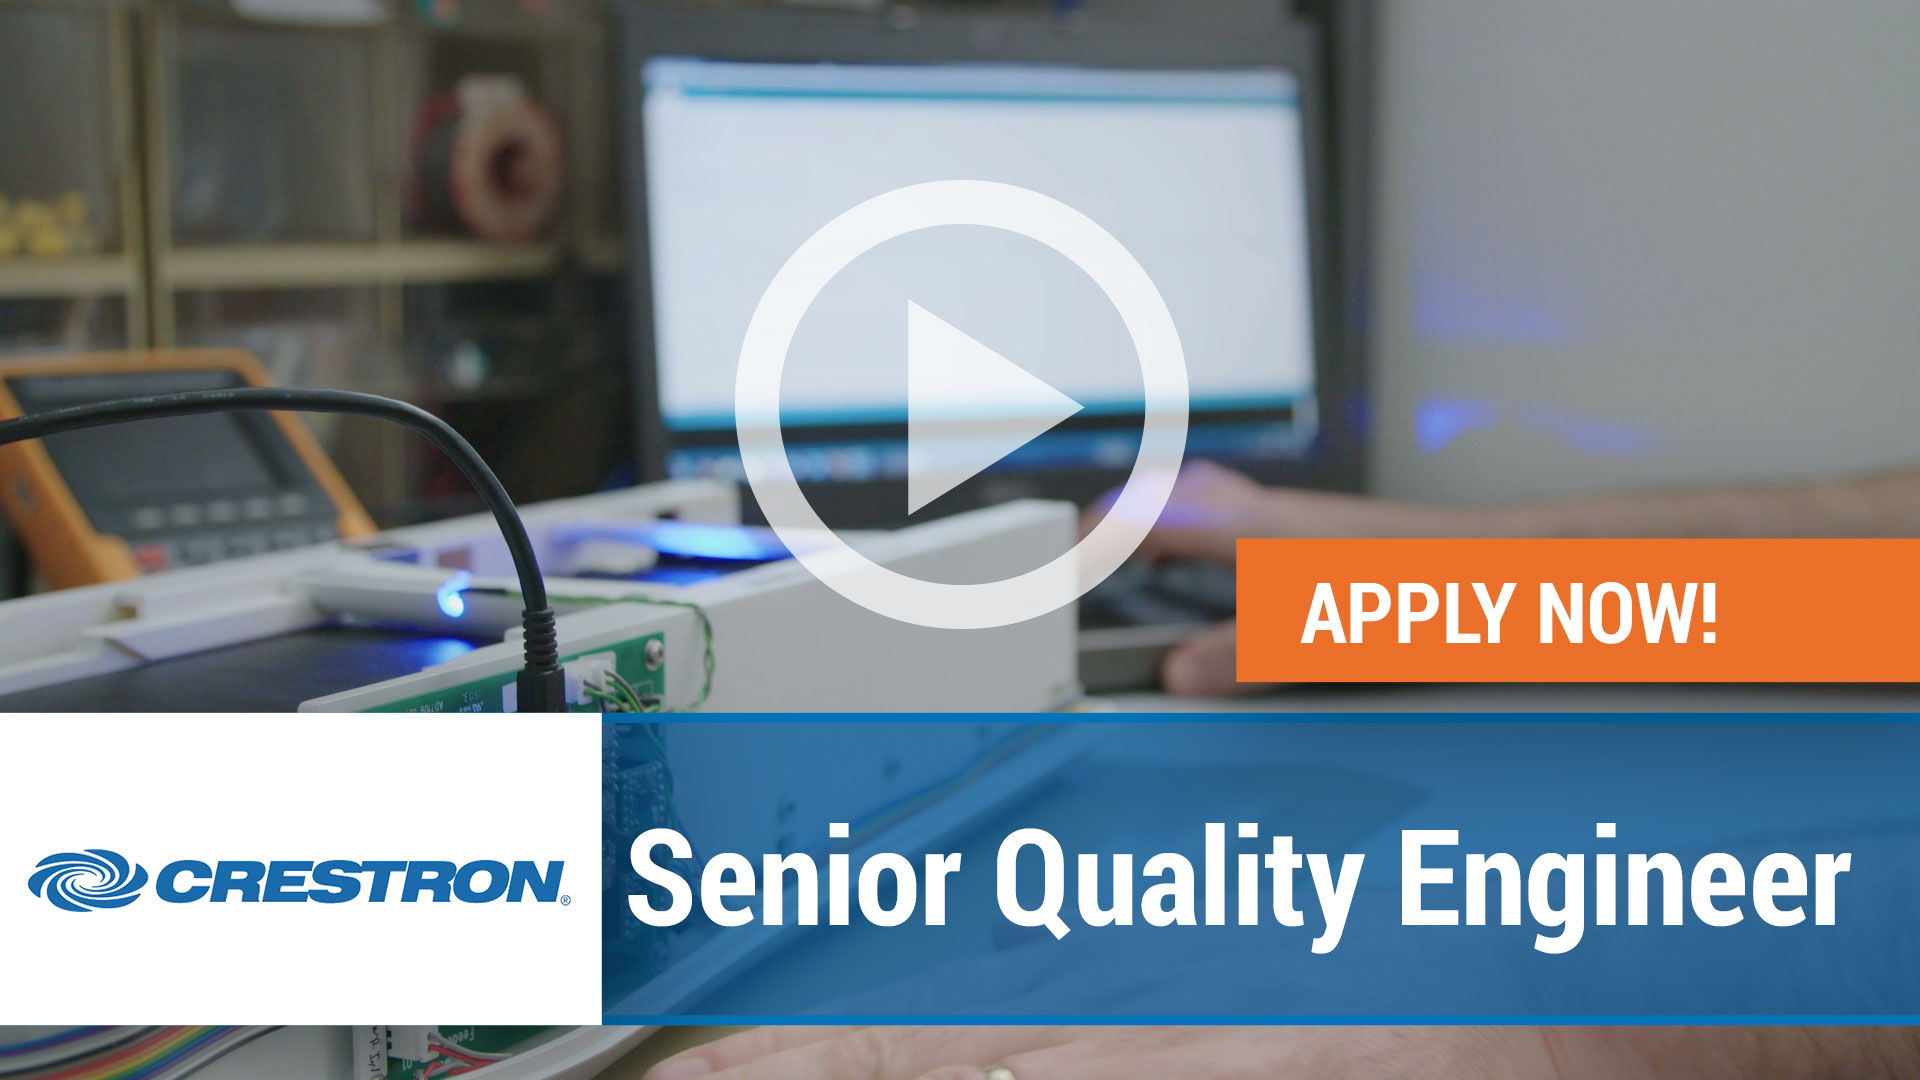 Watch our careers video for available job opening Senior Quality Engineer in Rockleigh, New Jersey